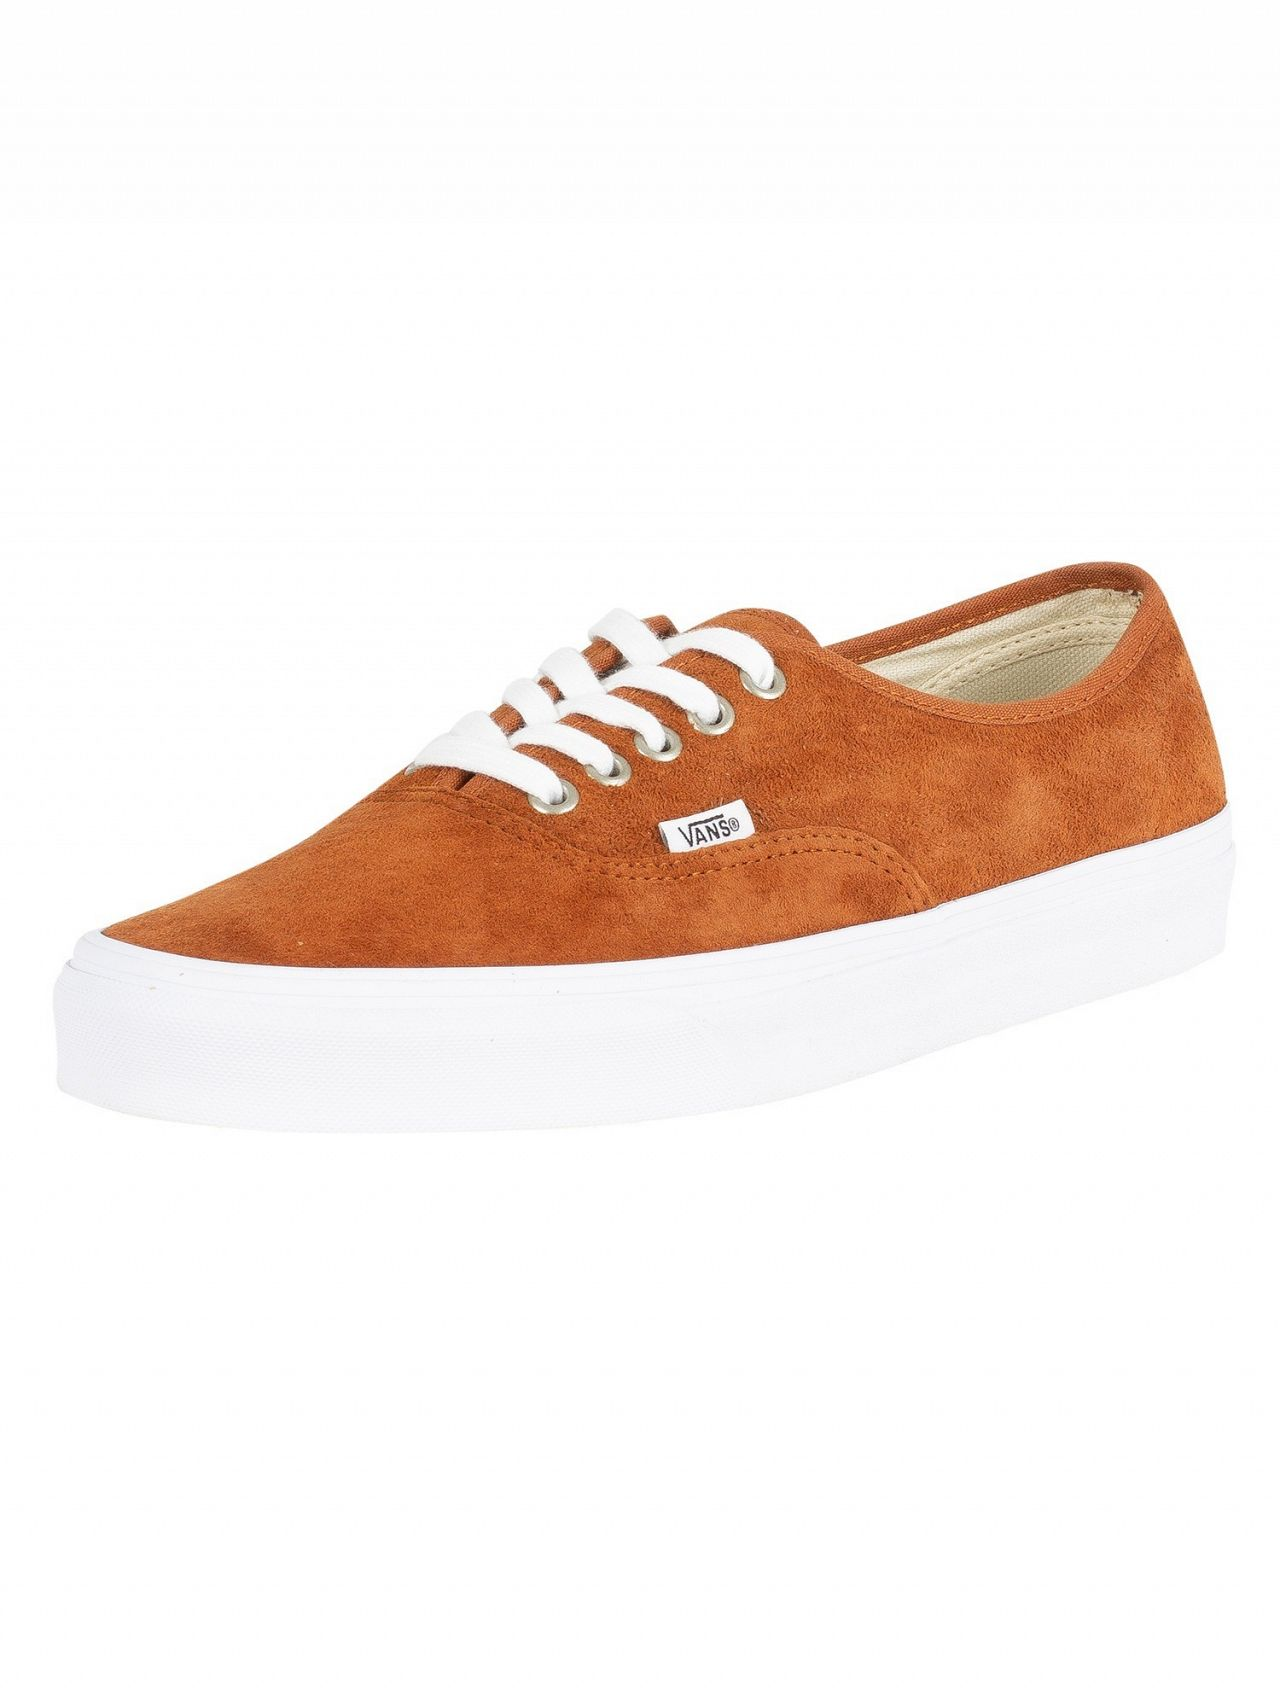 4788bd51897b Vans Brown Authentic Suede Leather Trainers